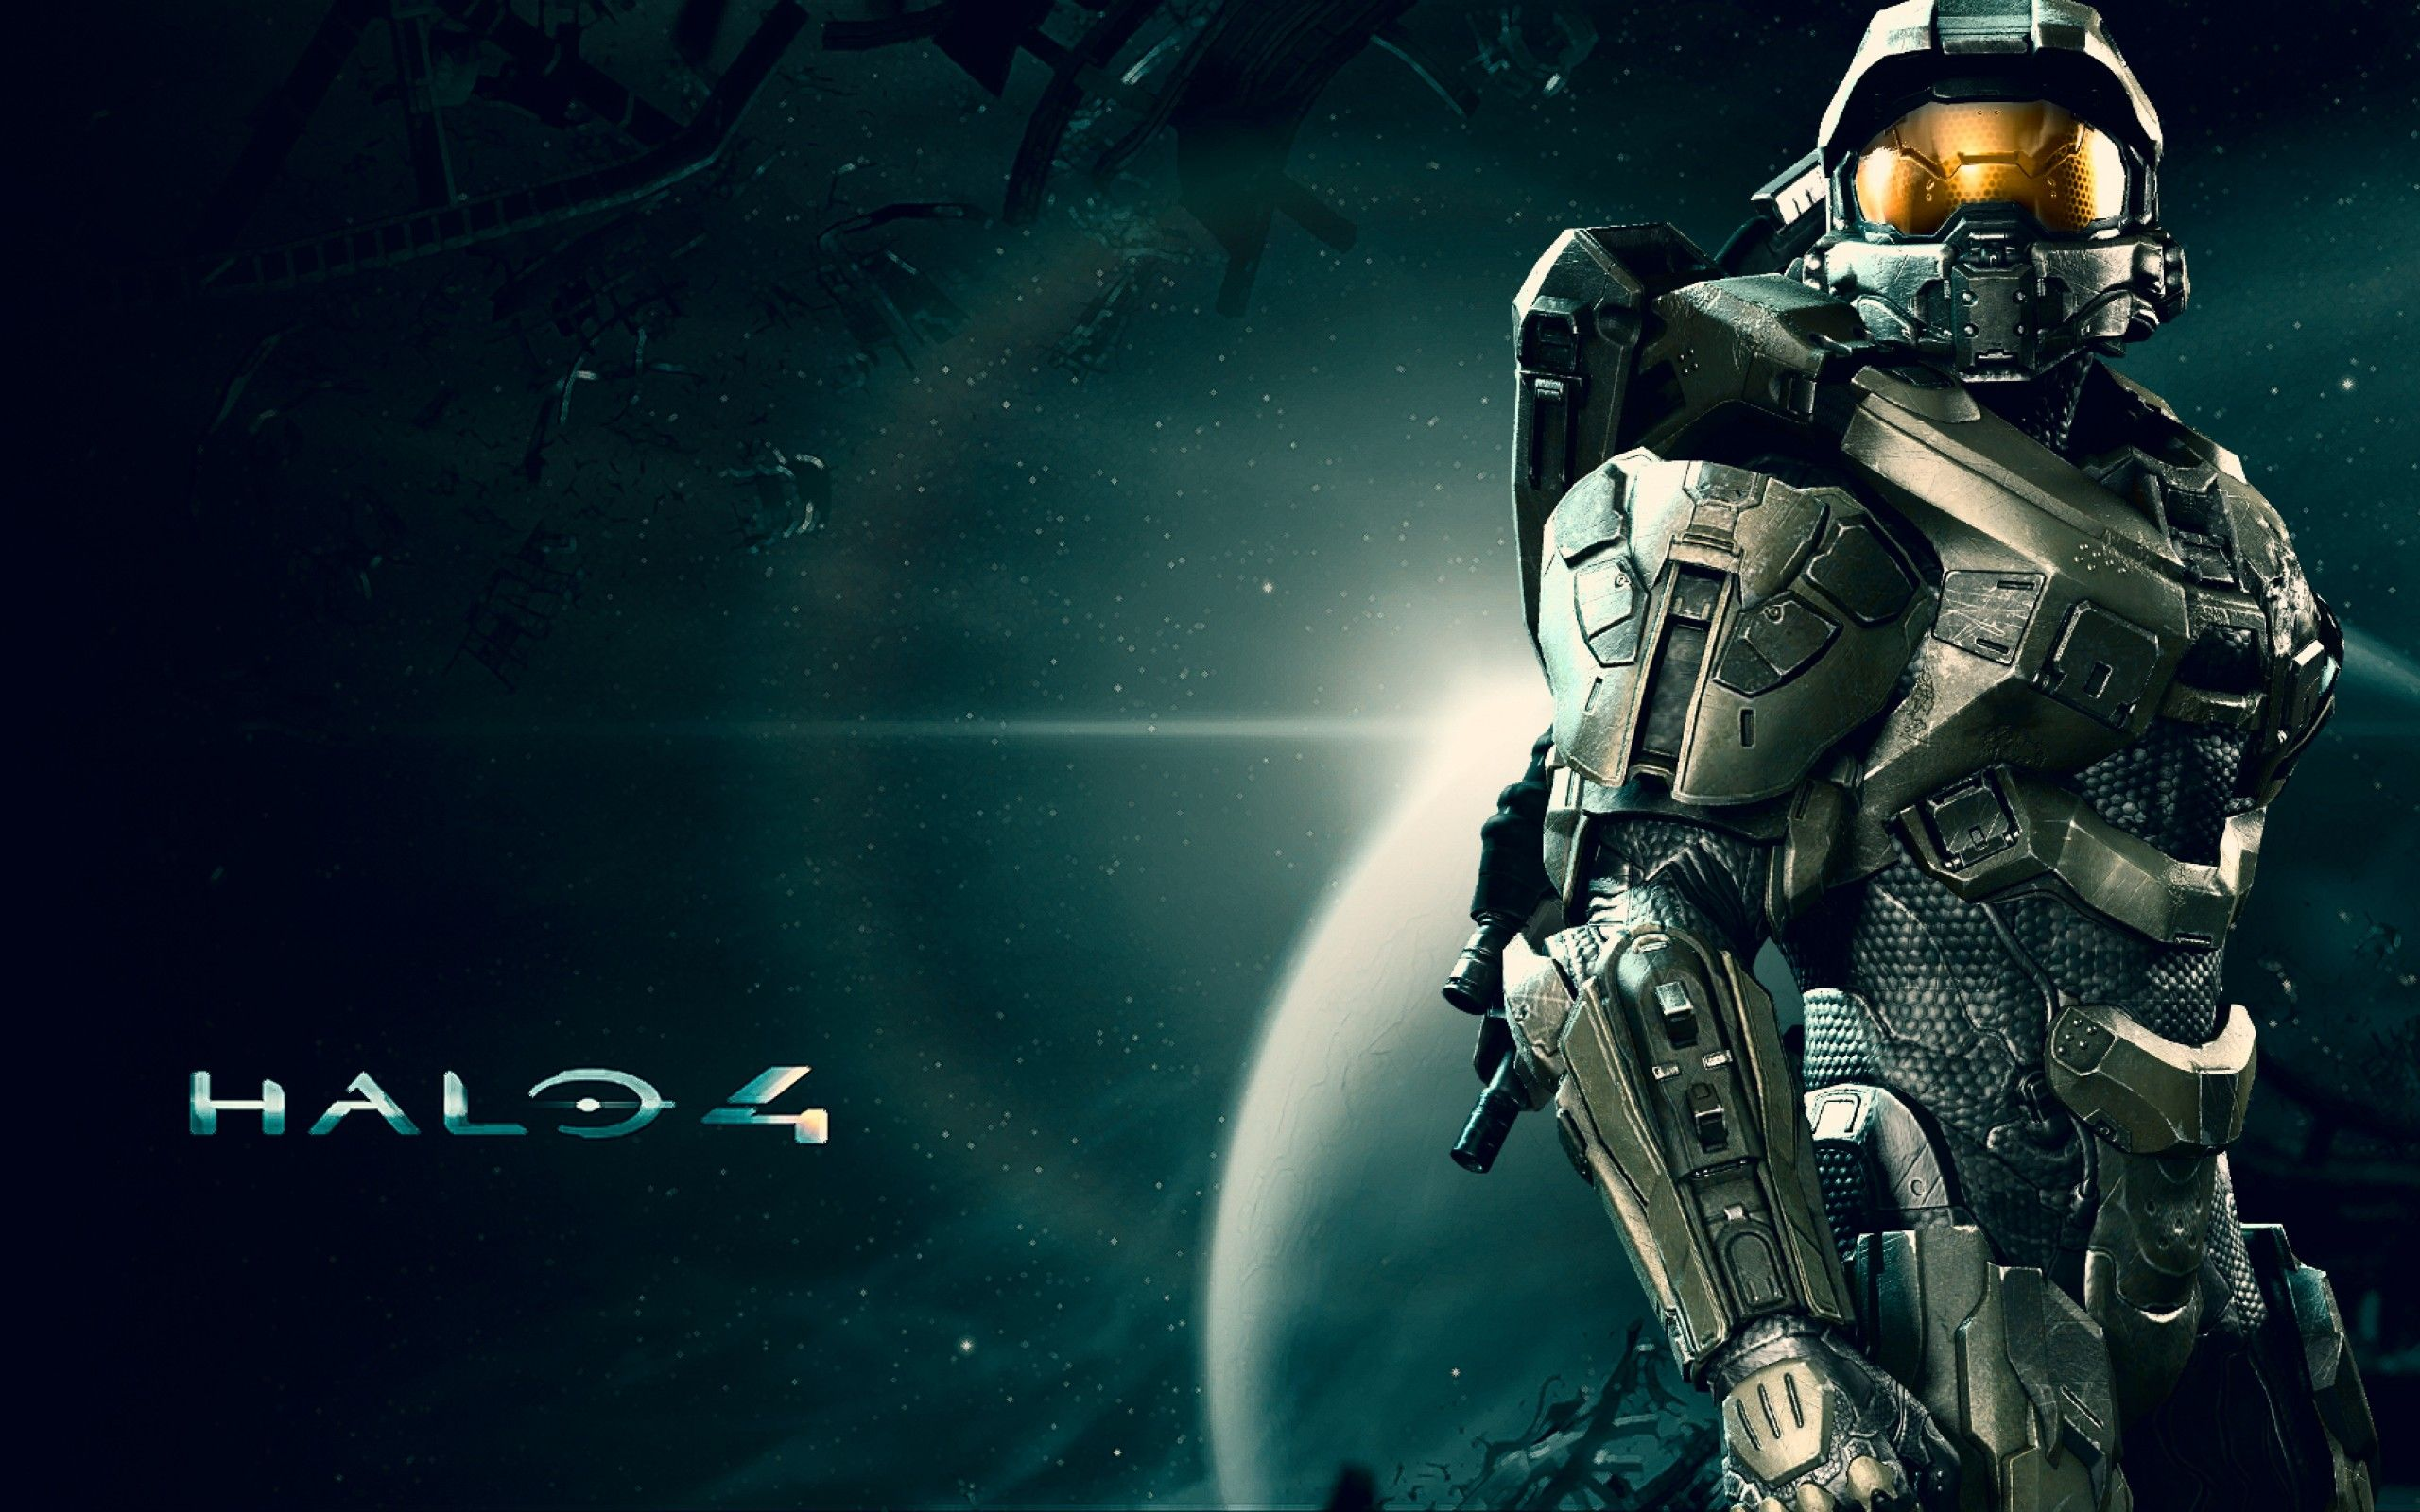 halo 2 background, halo 2 pic